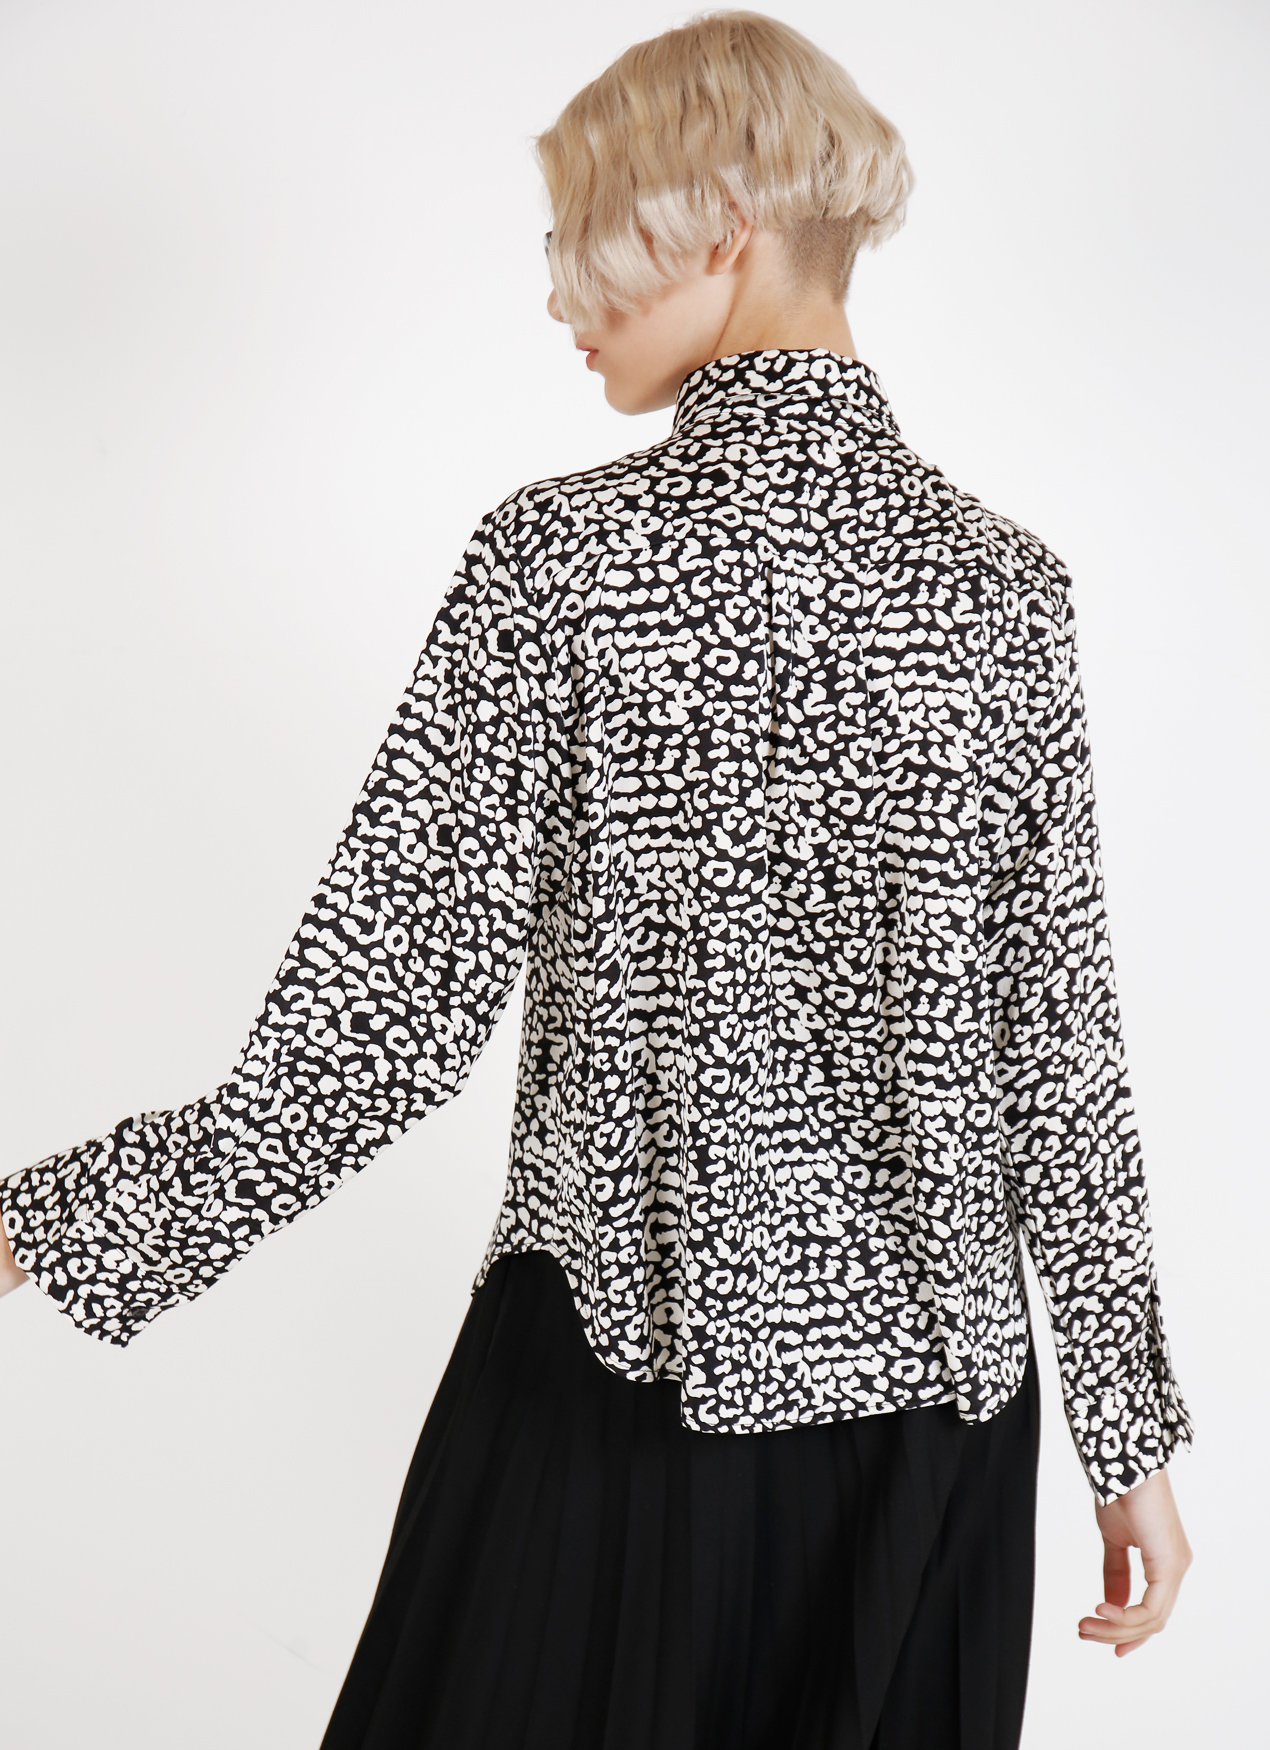 BOWN Lilly Top - White Black